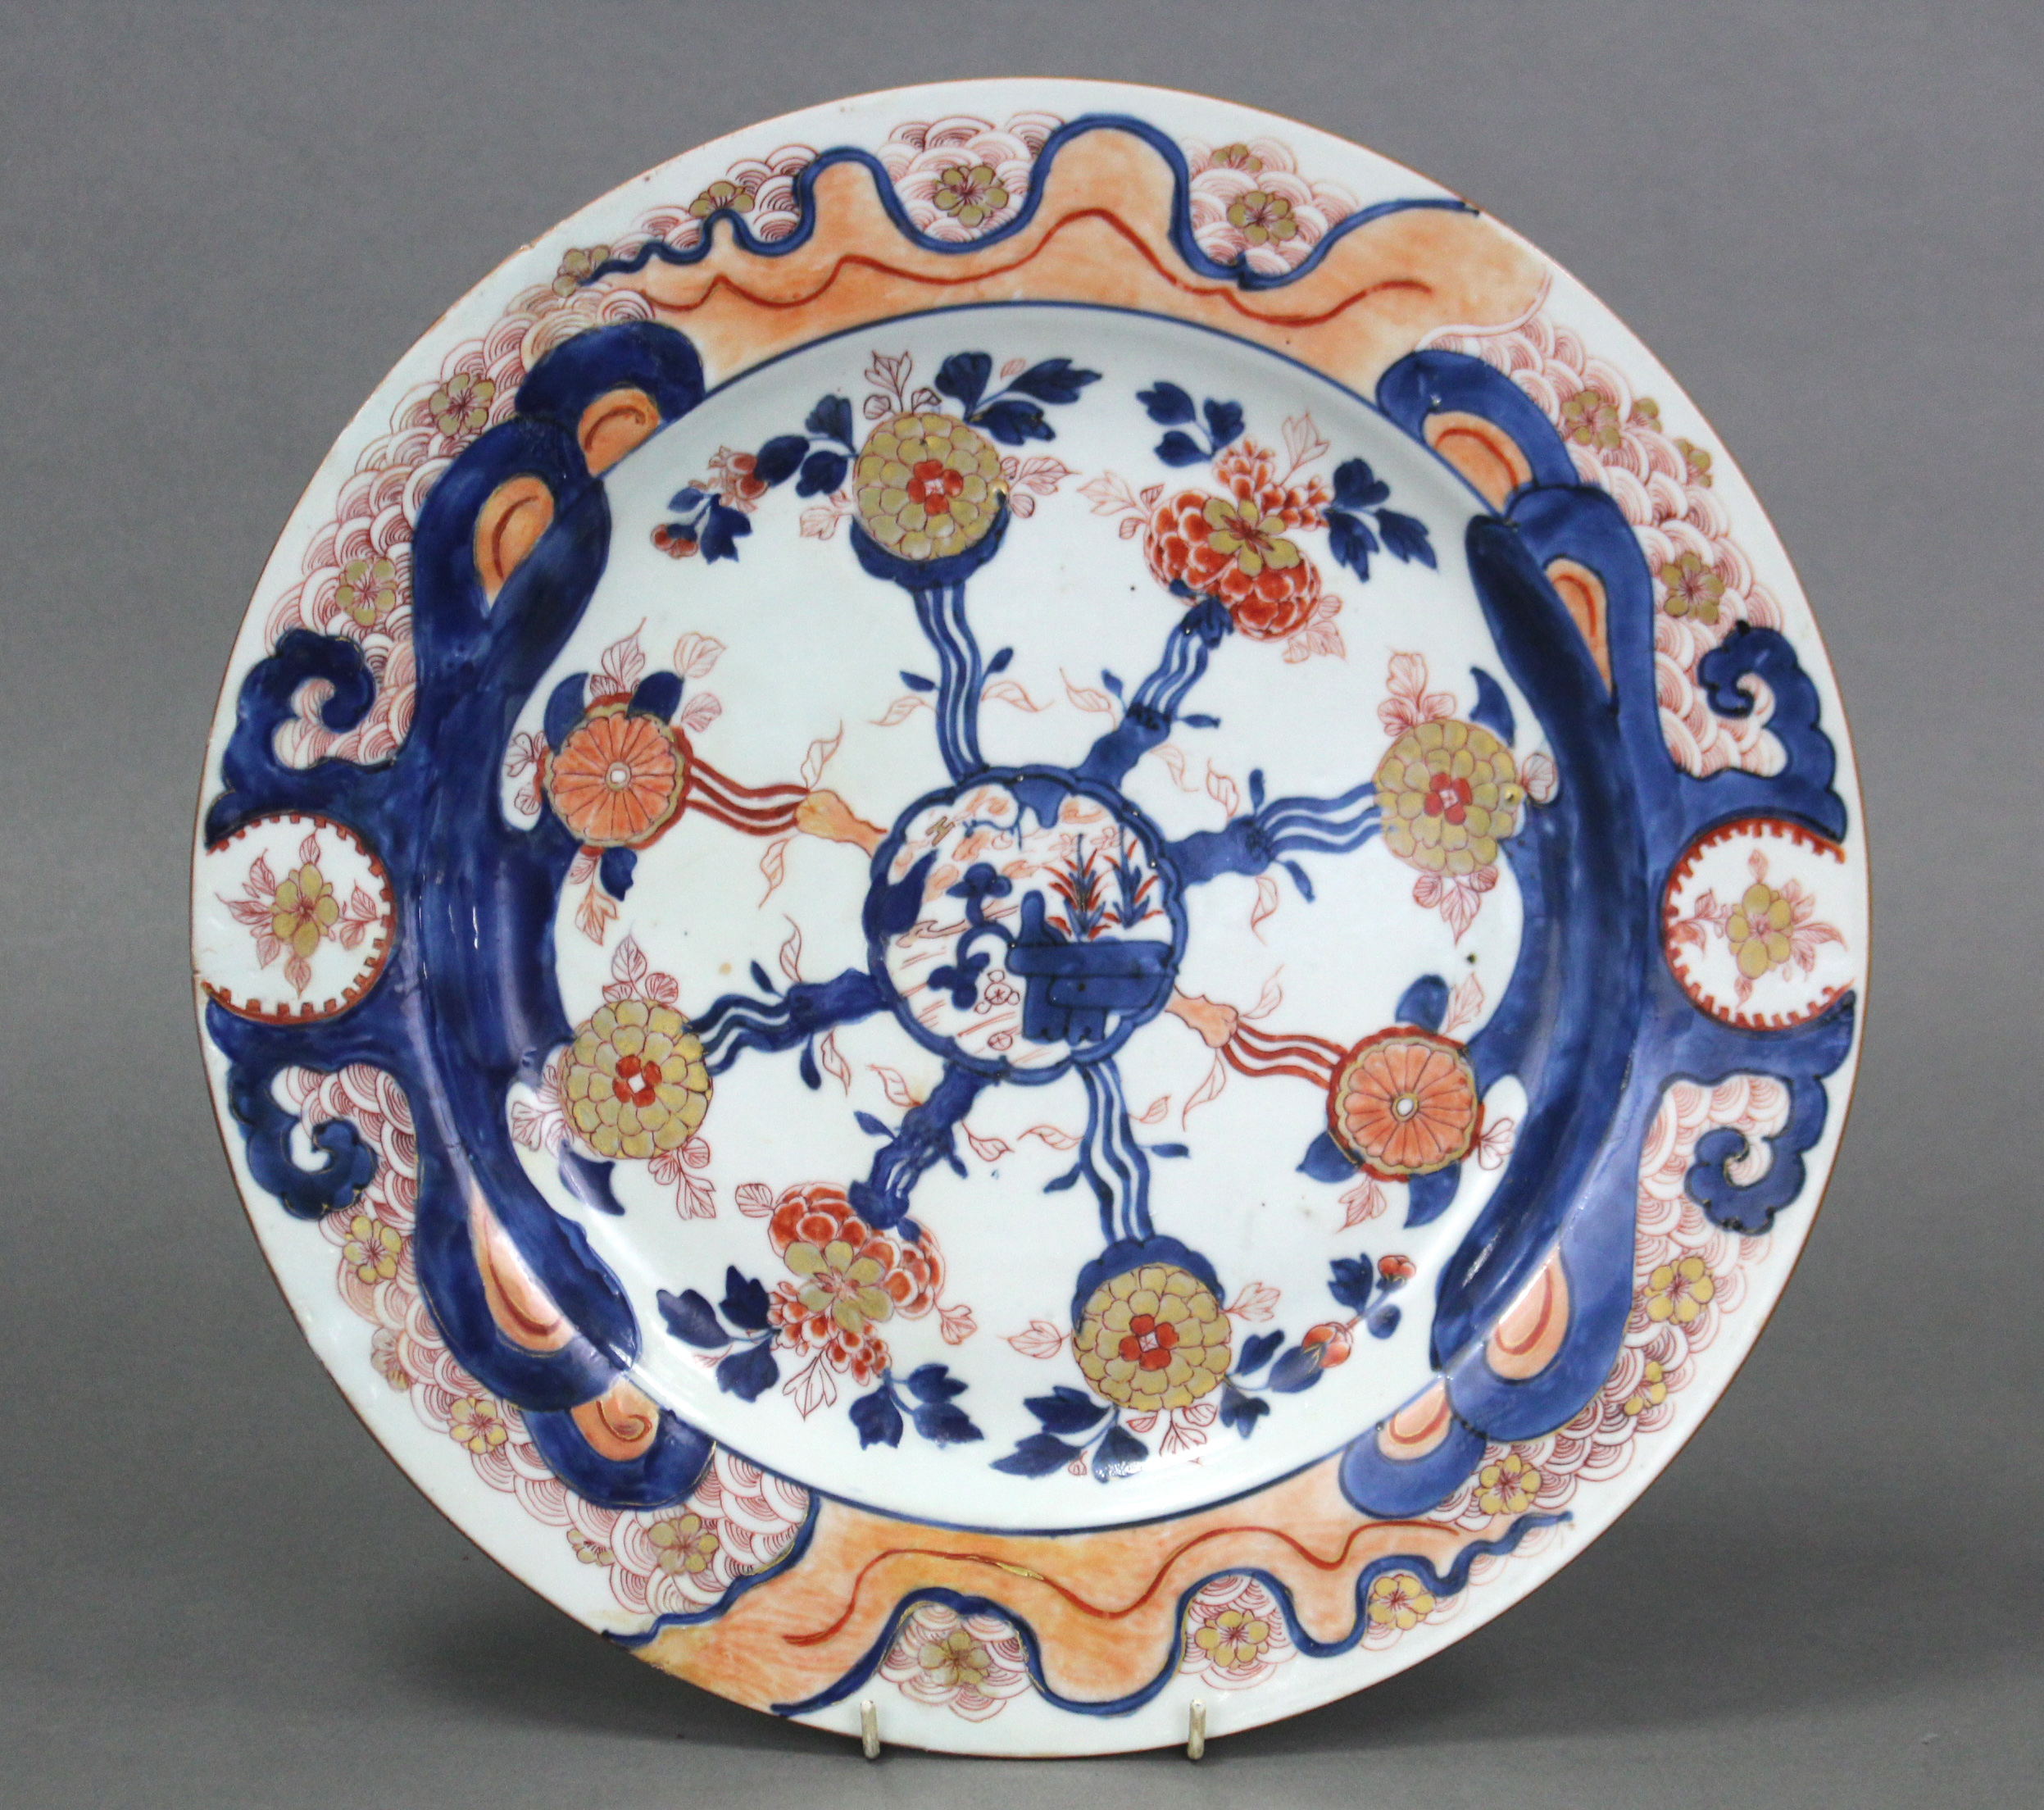 An 18th century Chinese Imari porcelain charger, the centre with landscape decoration & stylised